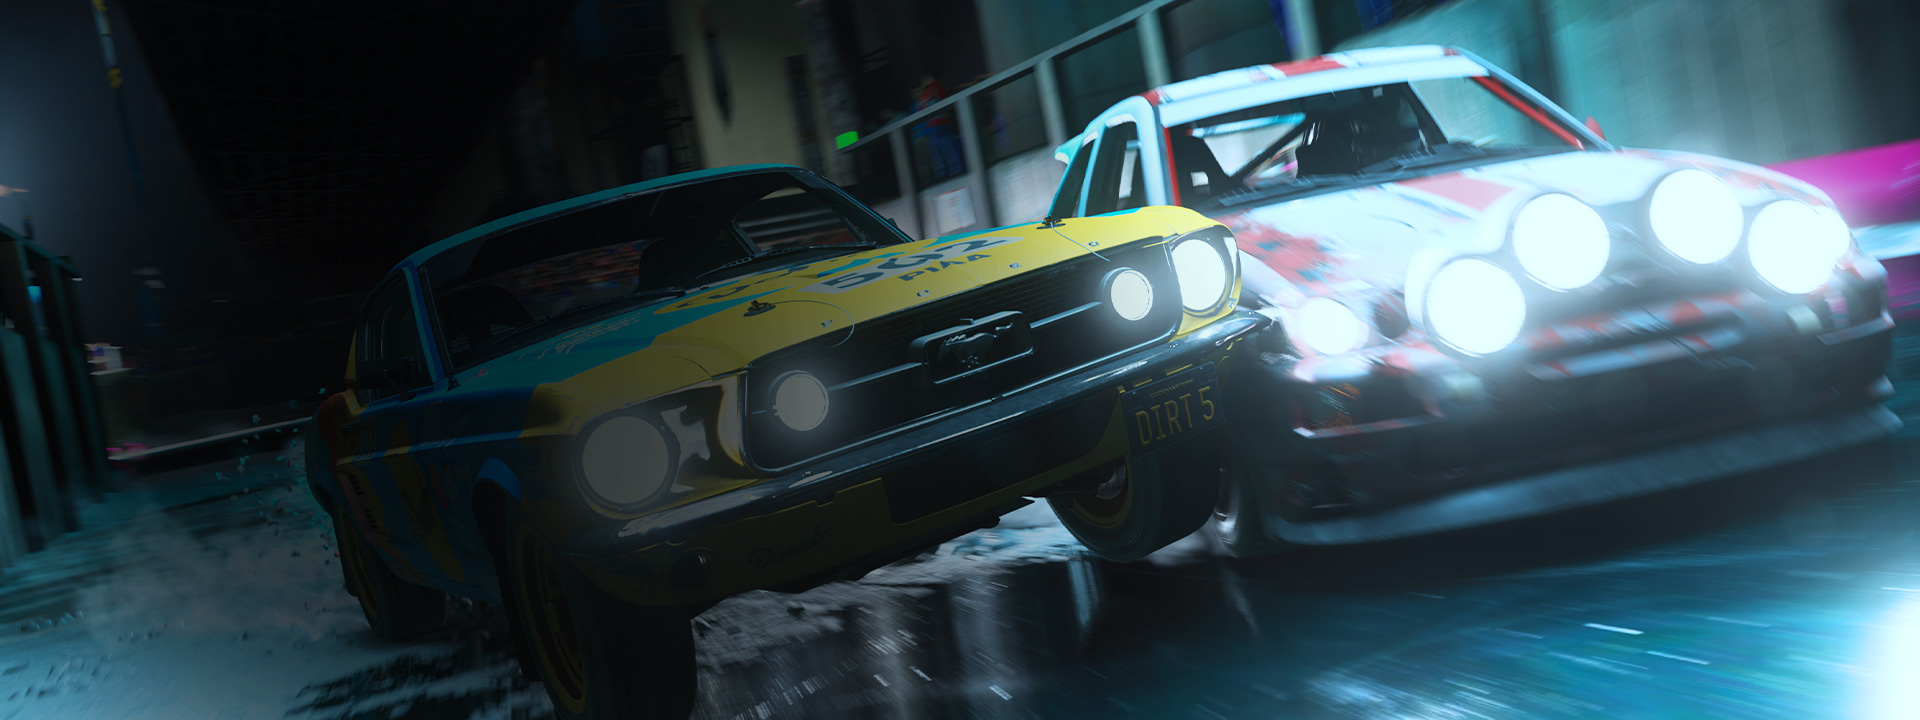 Mustang racing another car in DIRT 5